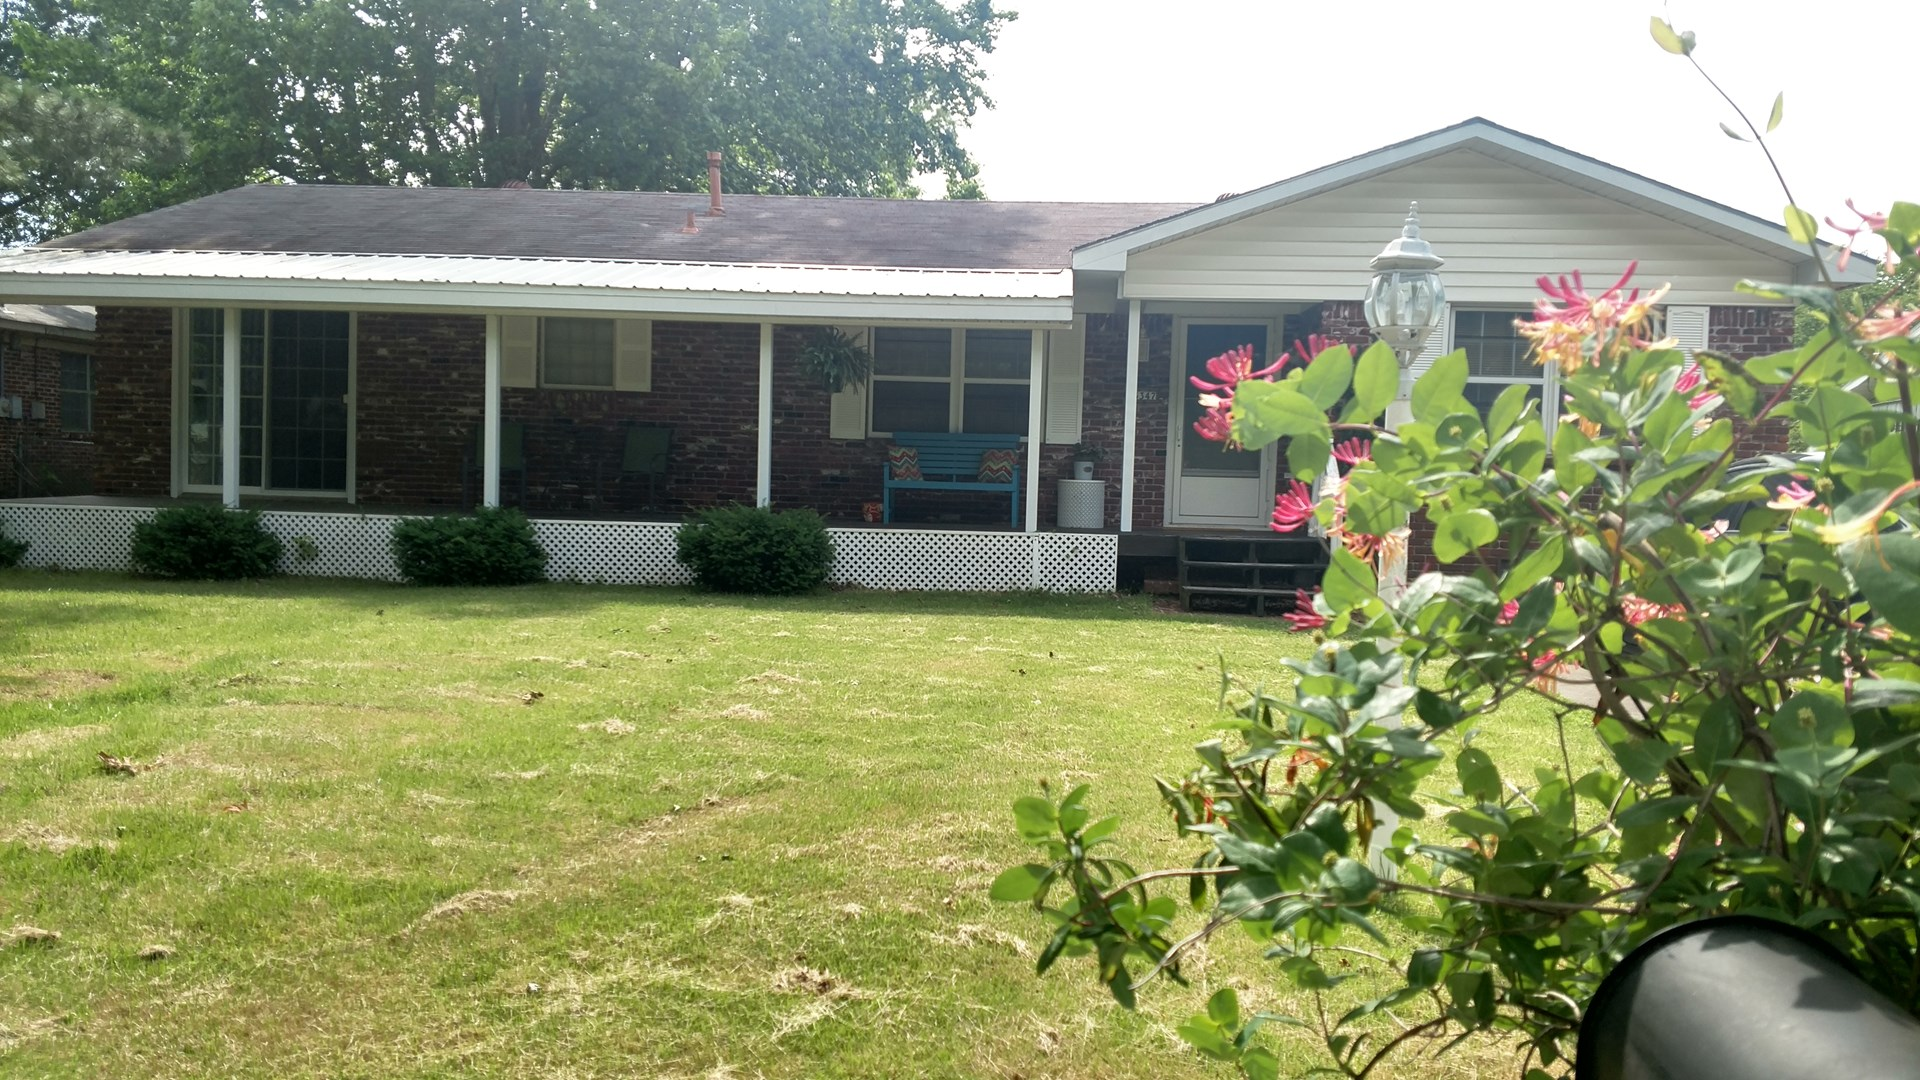 Fayetteville, Arkansas-3 Bedroom Home for Sale- $165,000